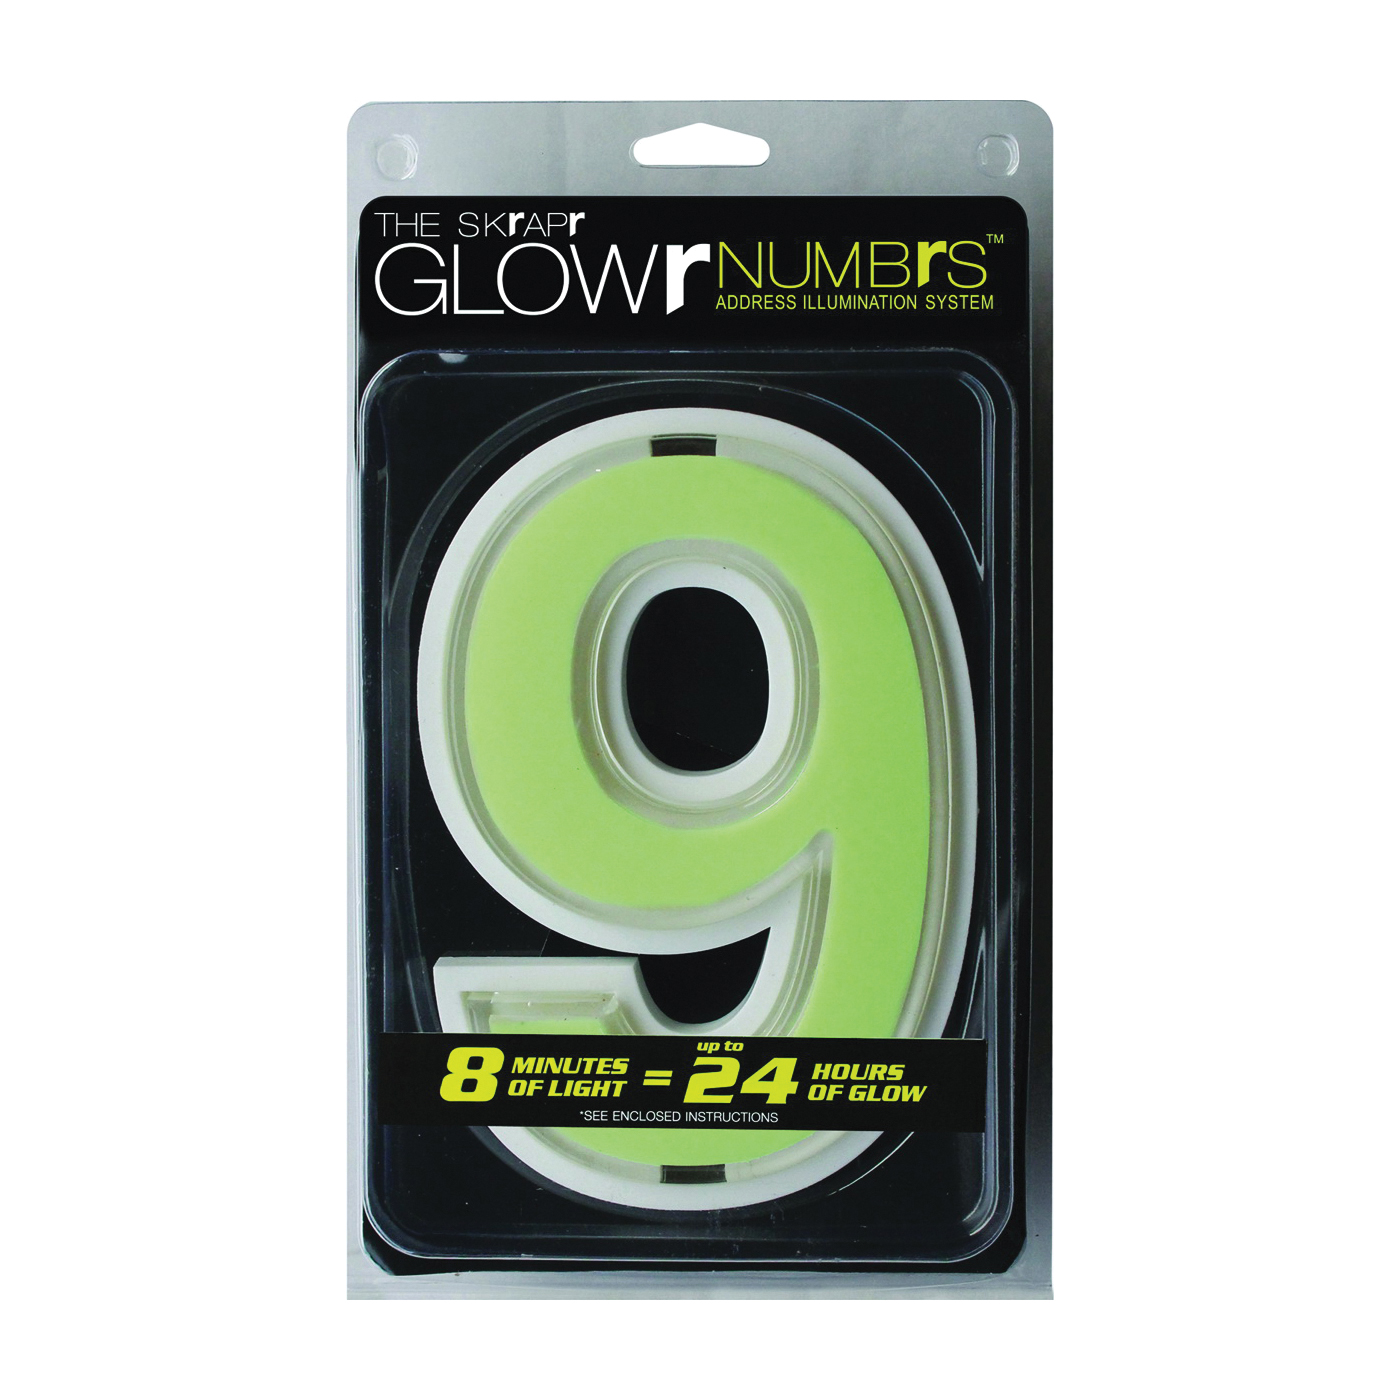 Picture of Glowr GLOWR9-U House Number, Character: 9, Neon Green Character, White Background, Nylon/Polypropylene